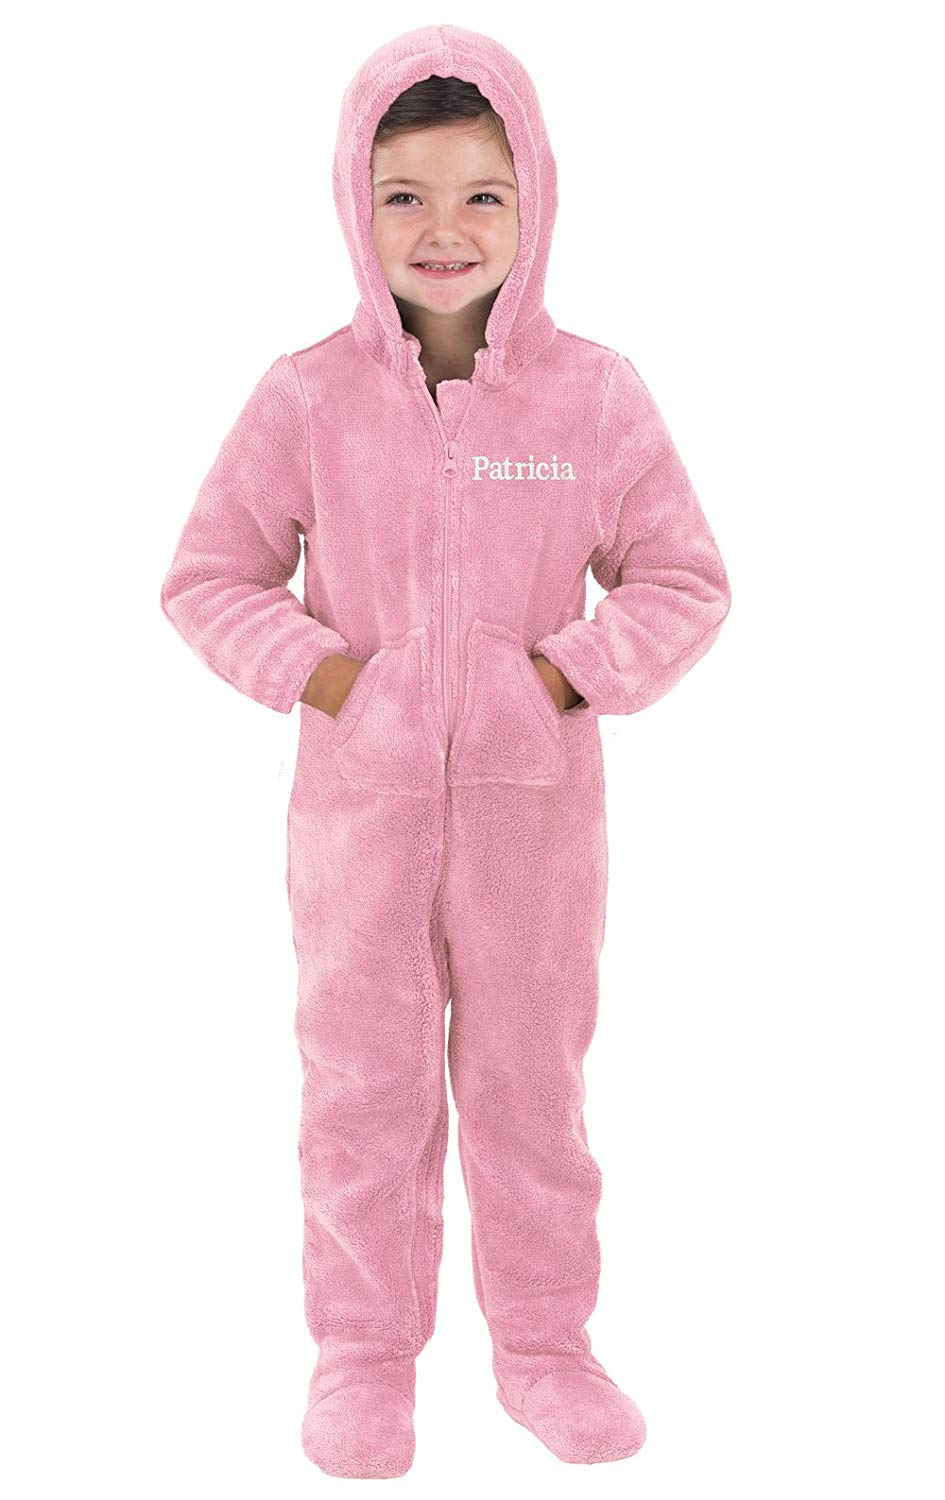 e928865568 Get Quotations · PajamaGram Personalized Toddlers  Hoodie-Footie Fleece Onesie  Pajamas